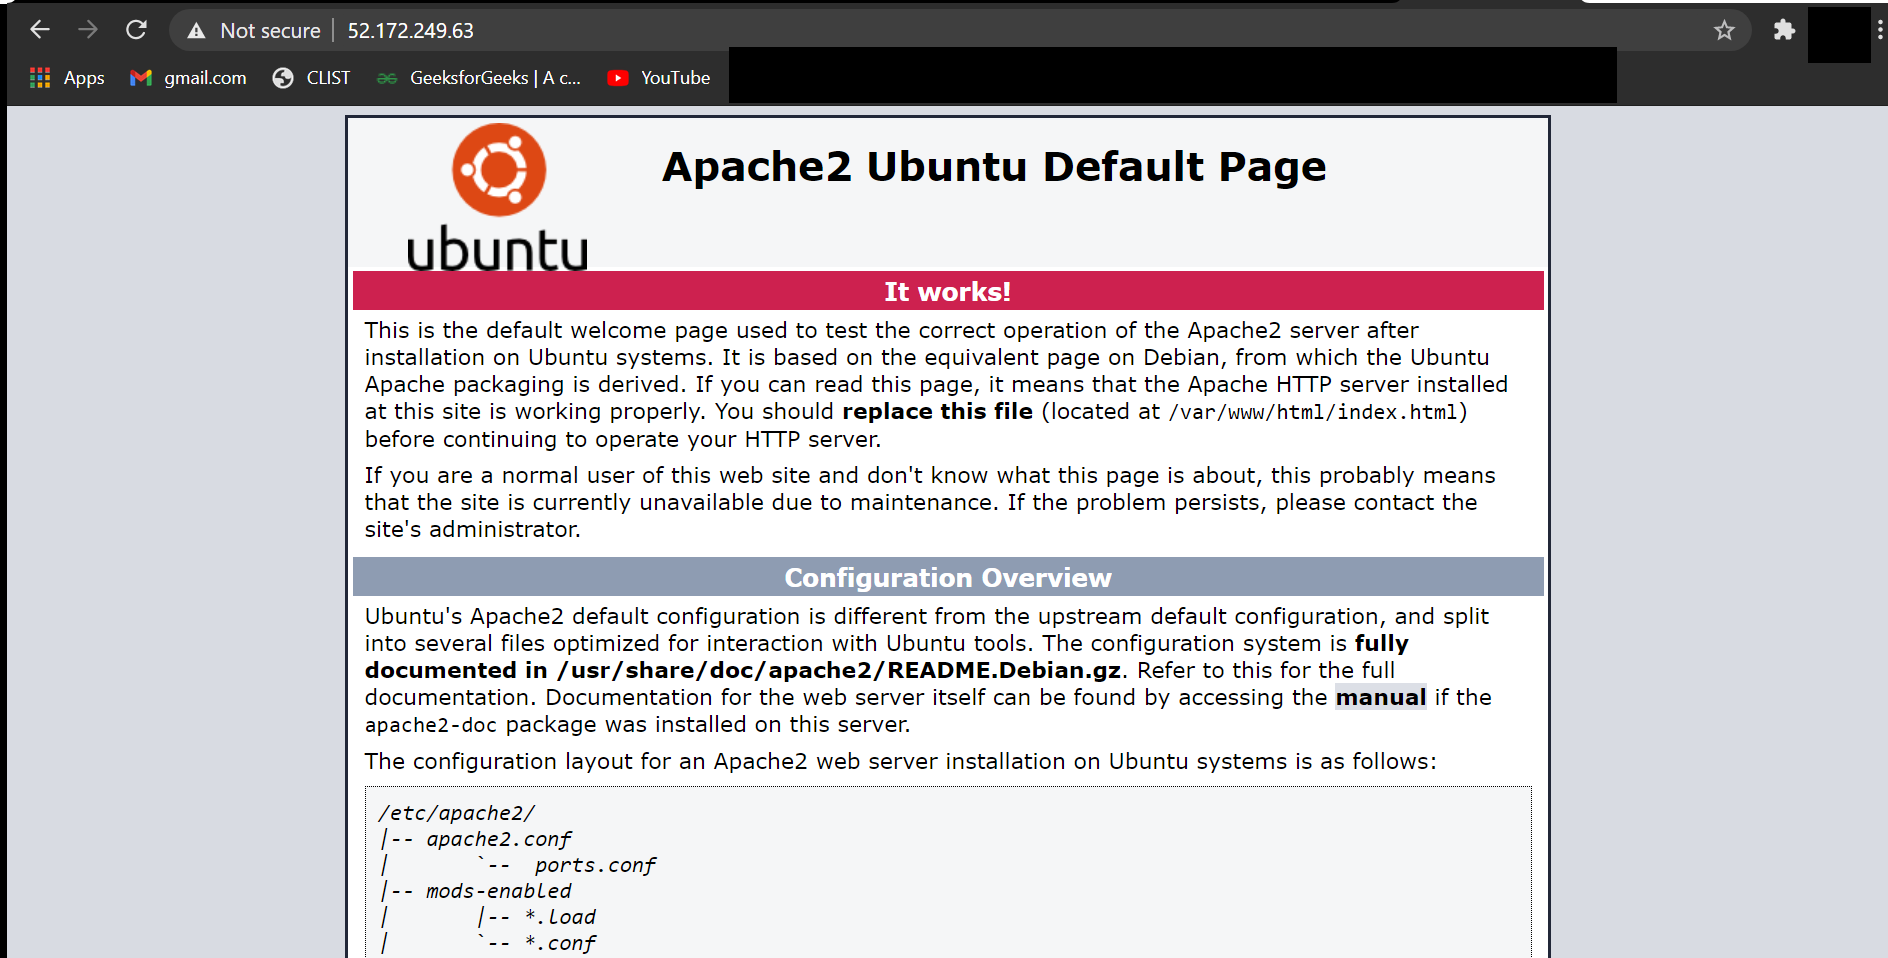 The web server is running & the default web page is successfully hosted.